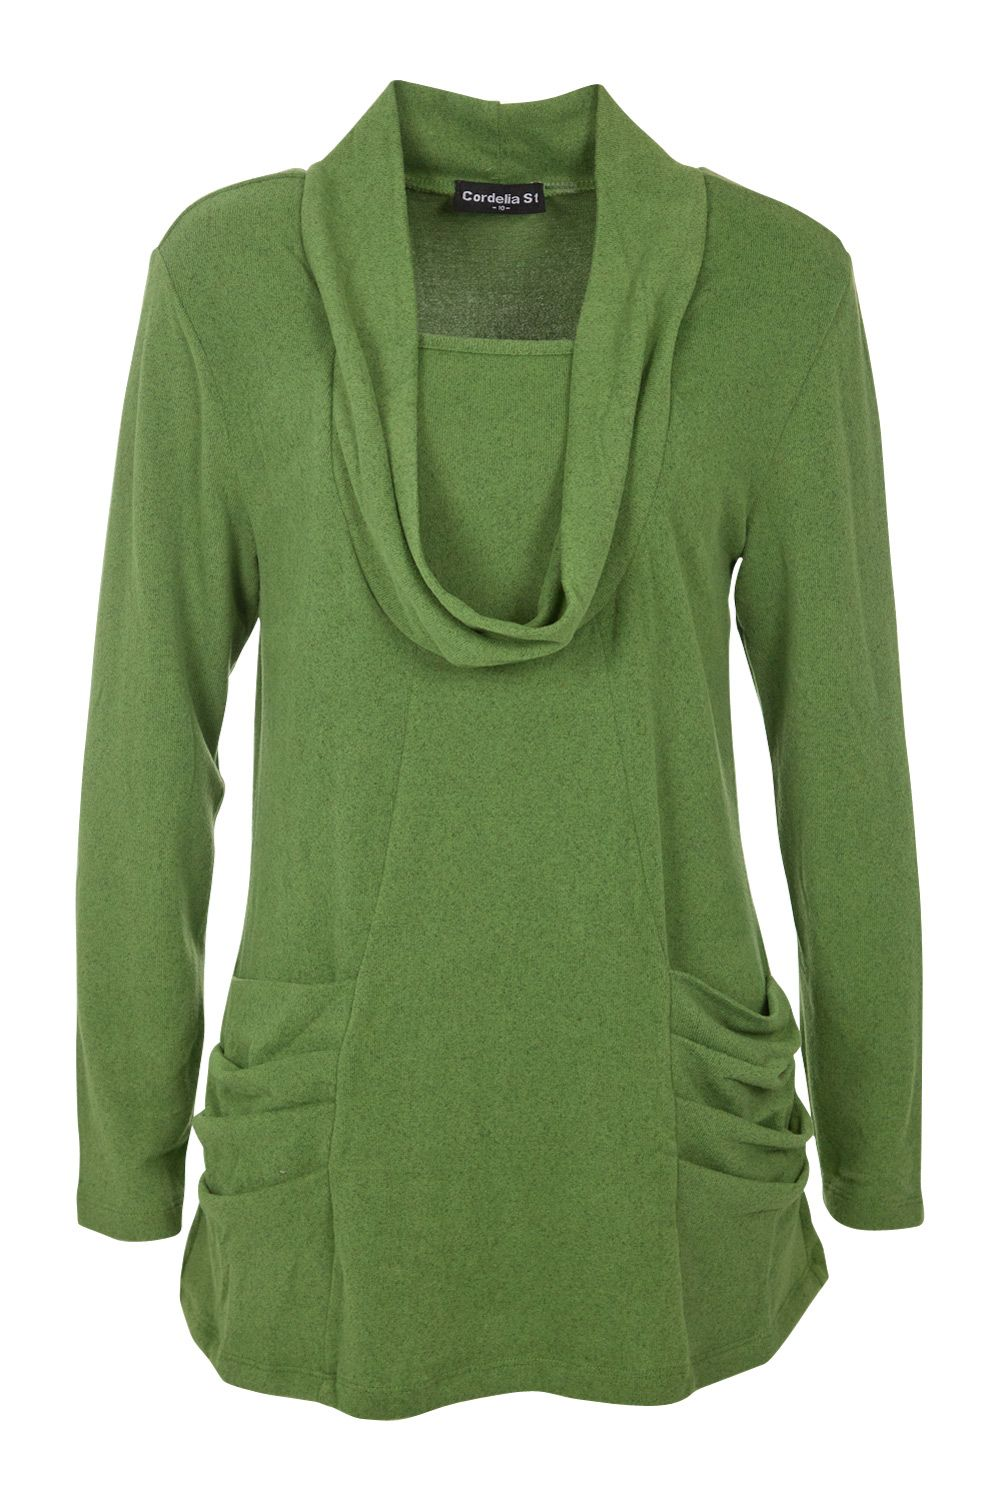 tunics are a must for me...with leggings. A cowl neck tunic with ...